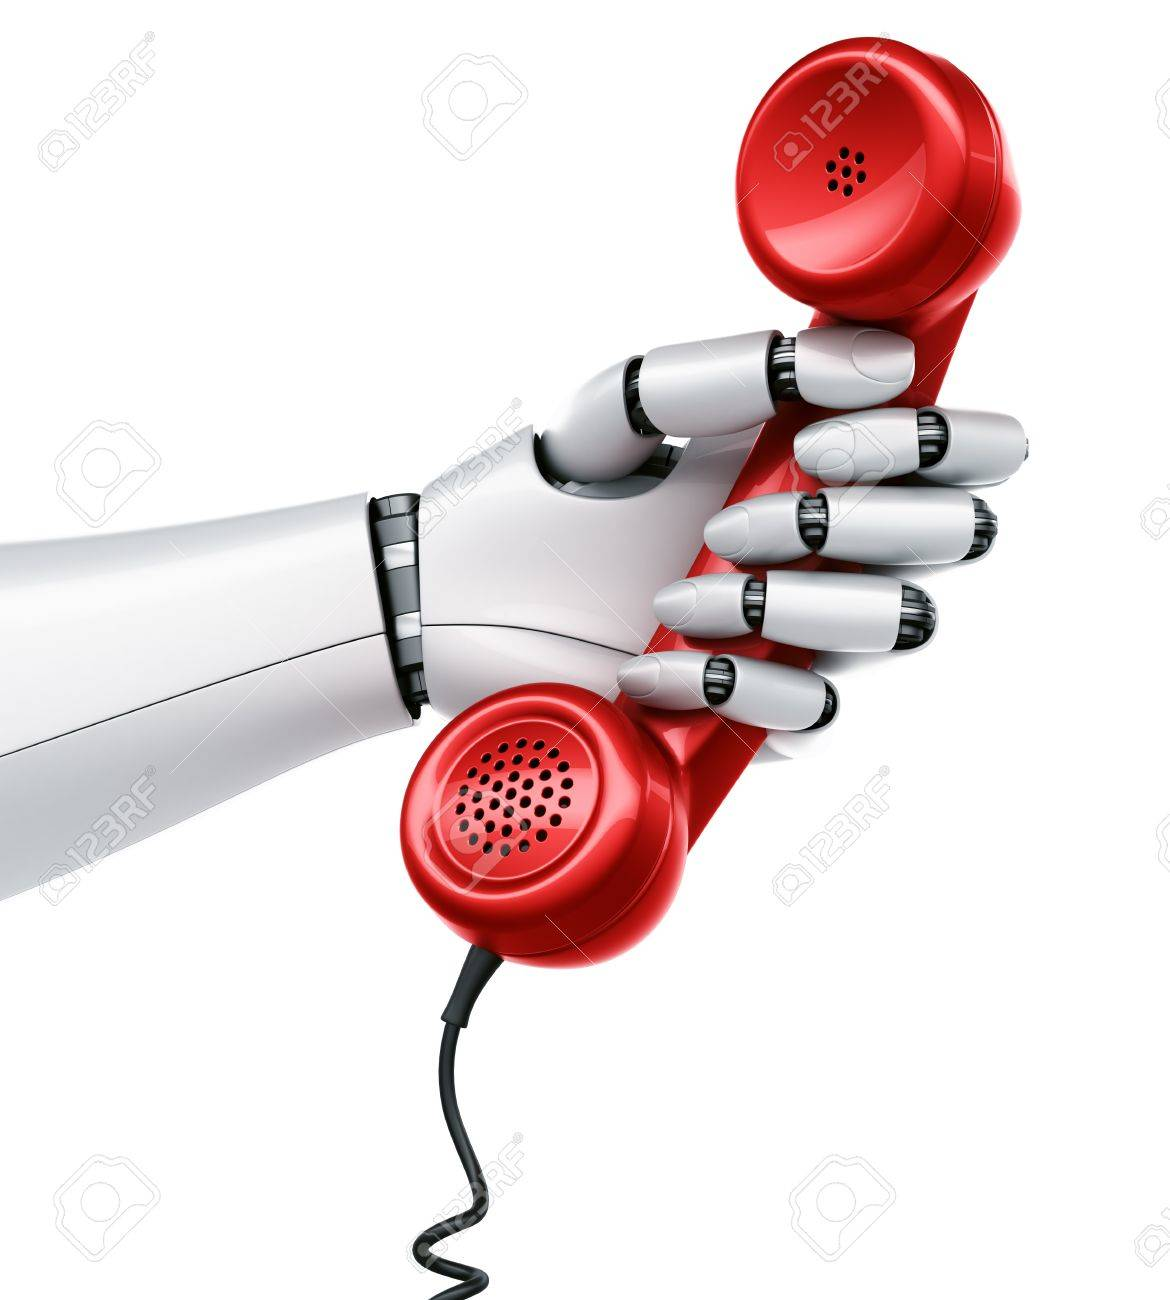 3d rendering of a robot hand holding a red telephone Stock Photo - 9136592